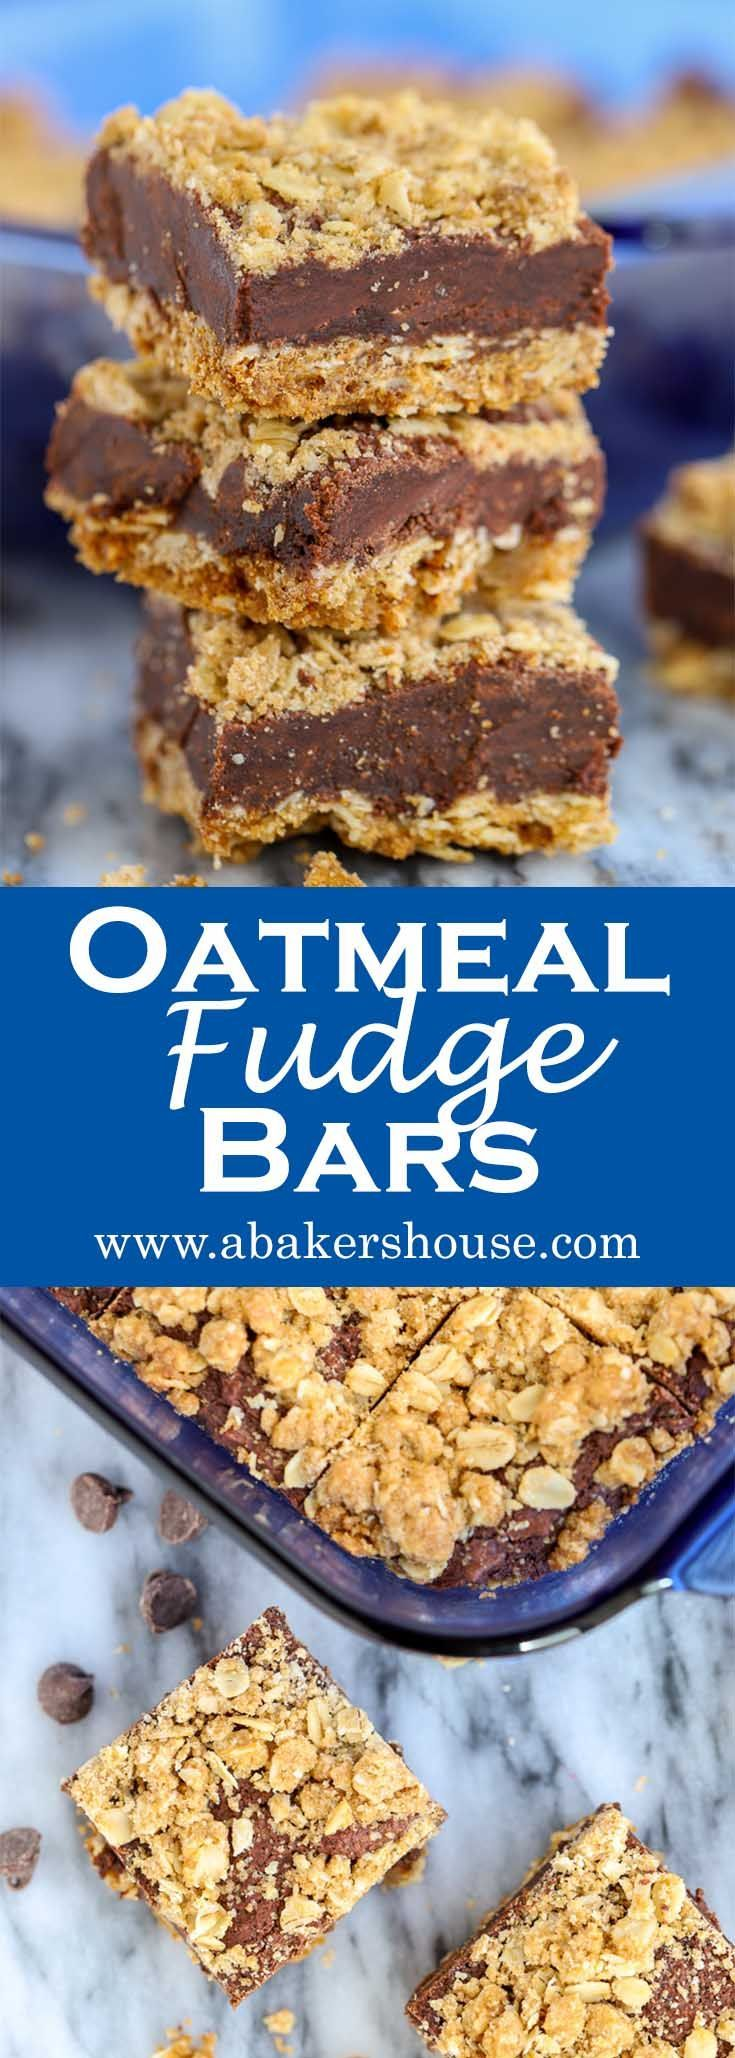 Oatmeal Fudge Bars may become your most requested dessert. A thick fudge-like layer of chocolate is sandwiched between a crunchy oatmeal base and a crumbled oatmeal topping.